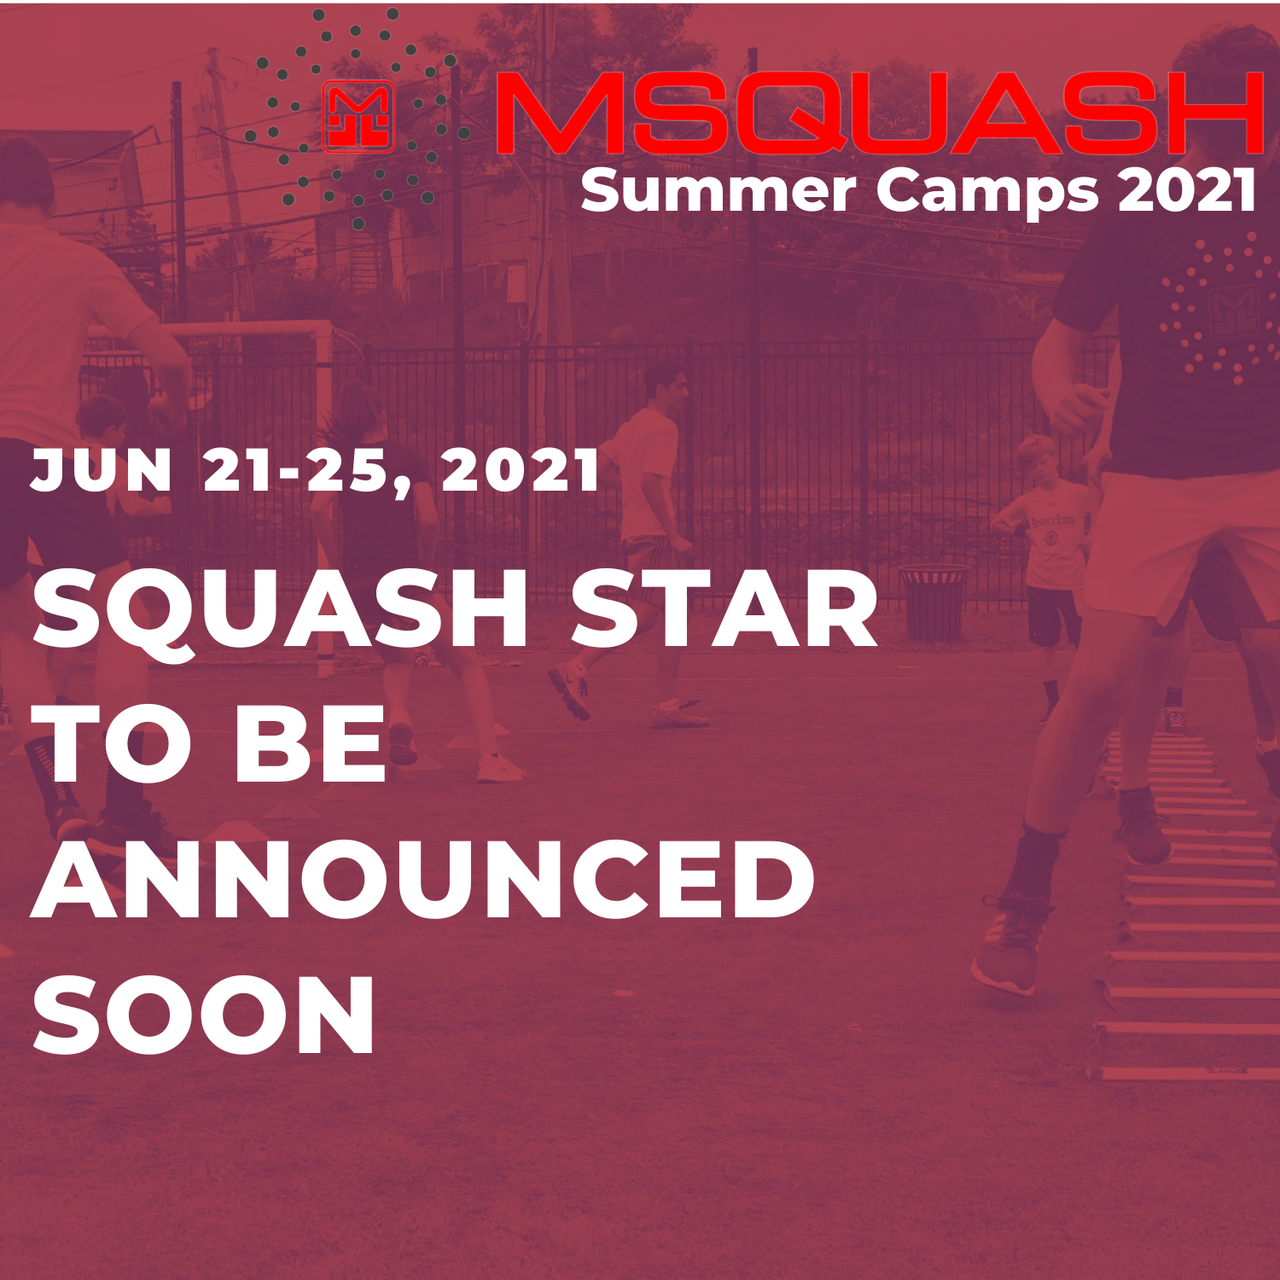 summer camps 2021 logo (22).png